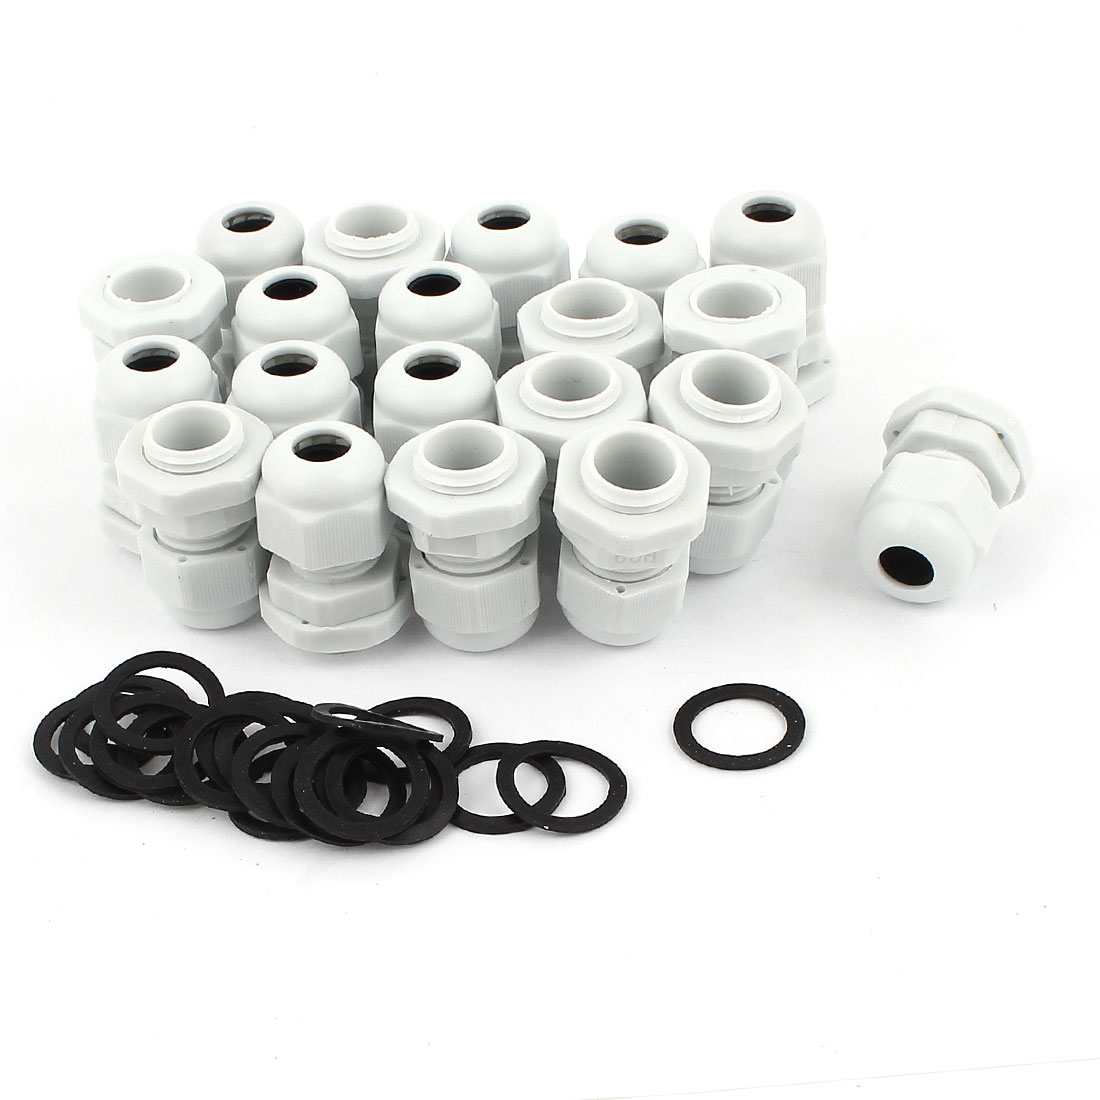 20 Pcs PG9 White Plastic 4-8mm Dia Waterproof Cable Glands Connectors